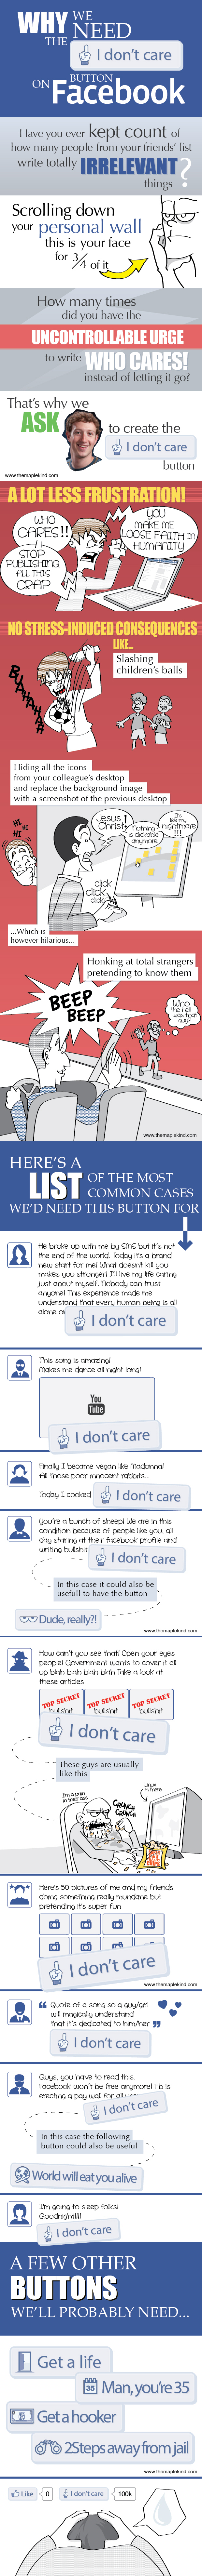 "Do We Need The ""I Don't Care"" Button On Facebook? (Infographic)"